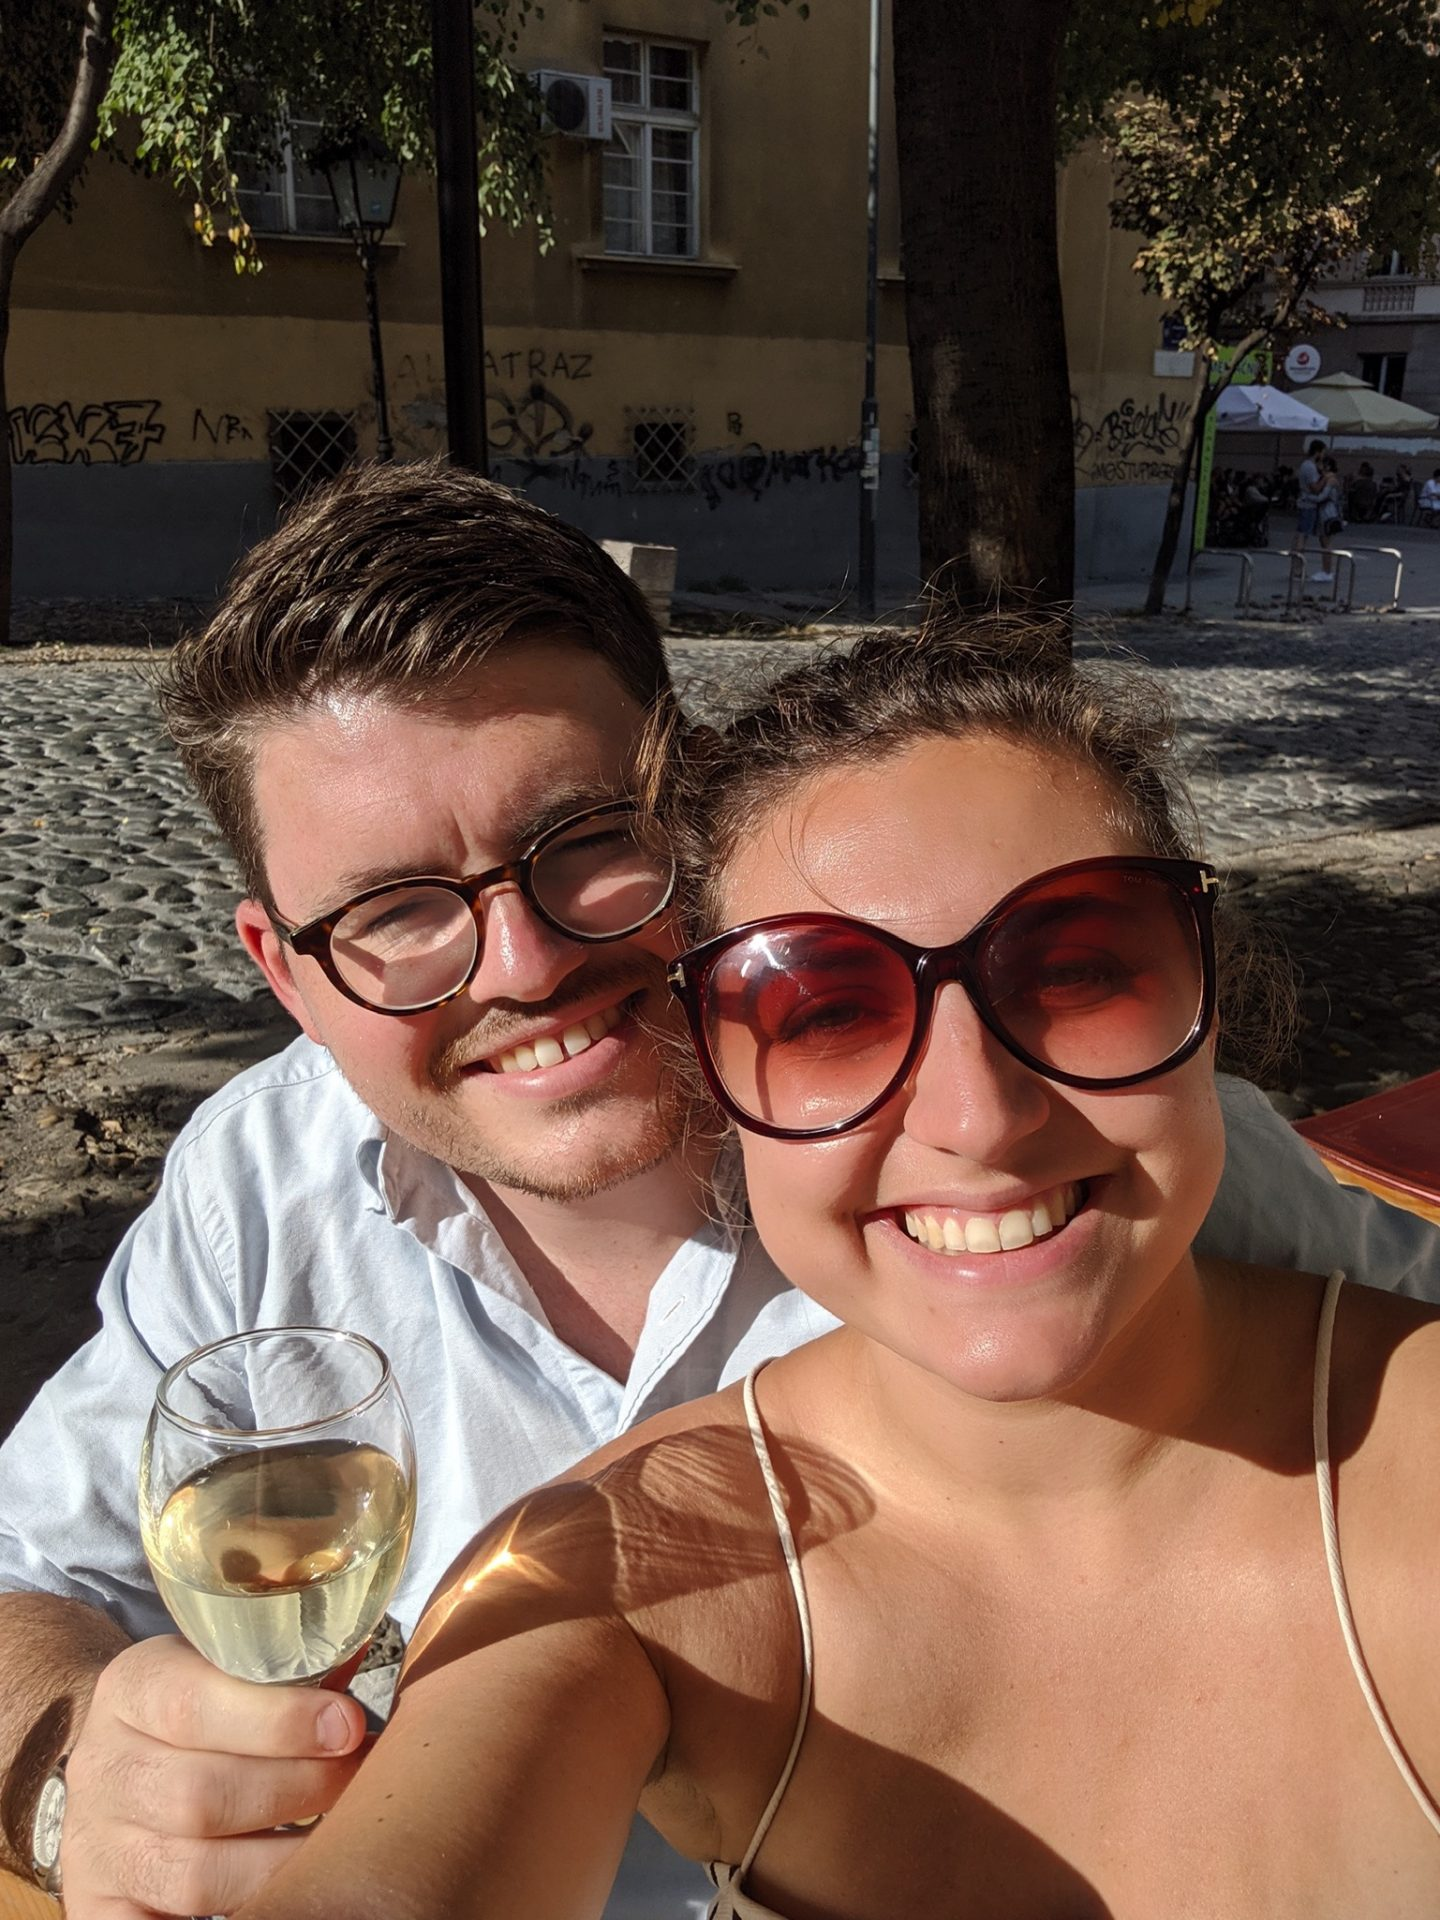 visit belgrade - Nell and Billy enjoying a glass of wine in the sunshine